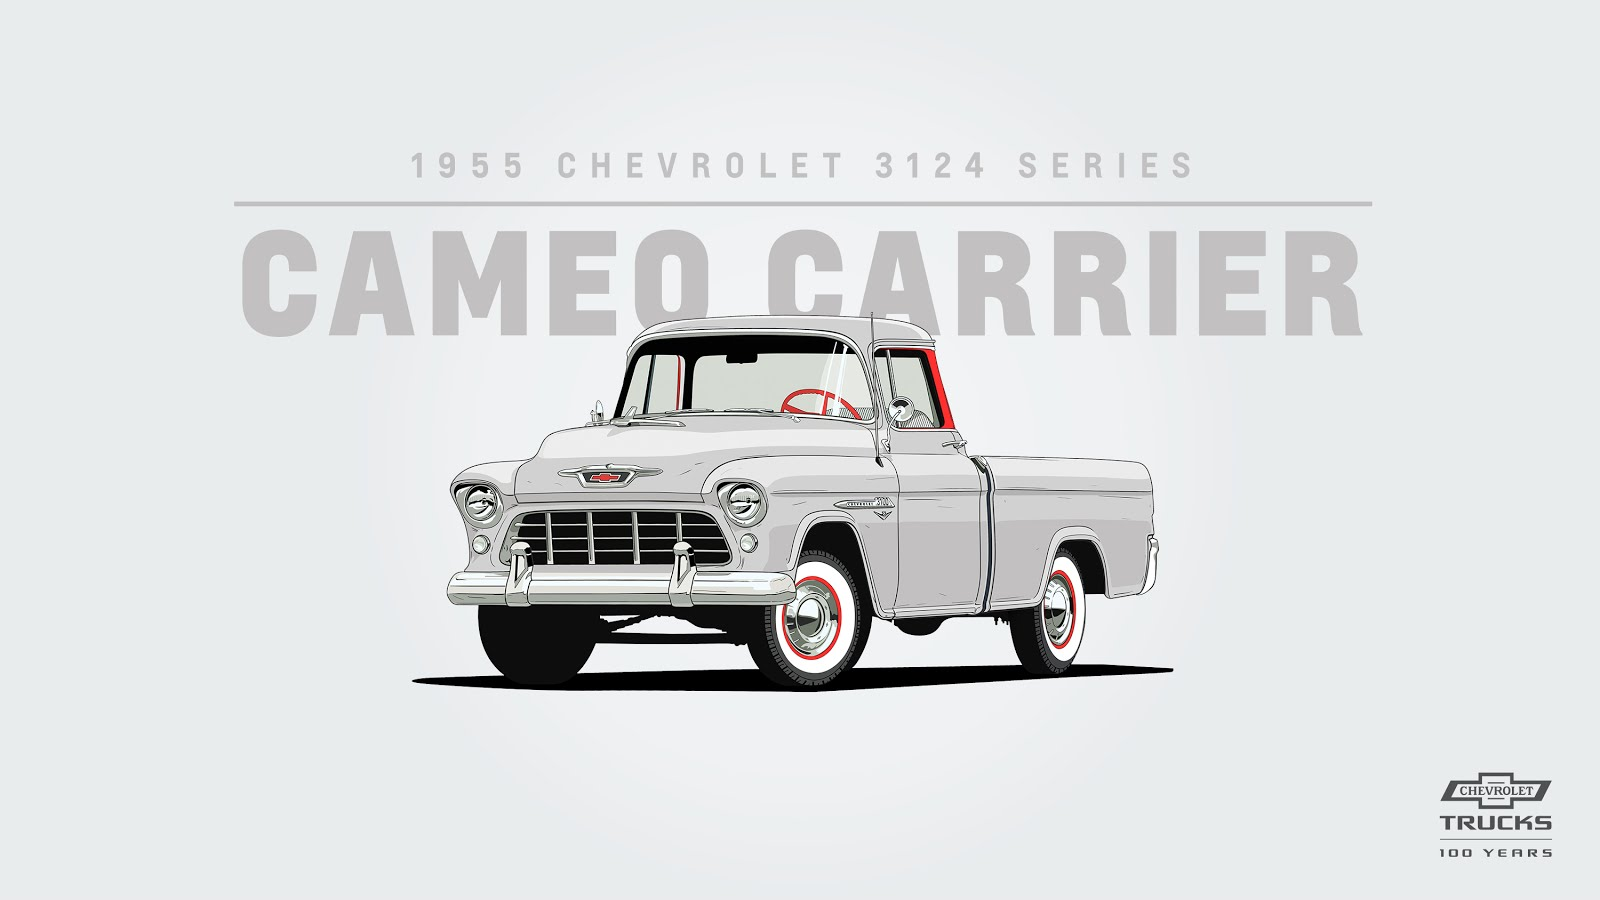 hight resolution of producing 123 horsepower with its 3 85l i 6 engine the 1955 chevrolet 3124 series was the first fleetside flat sided truck in the industry